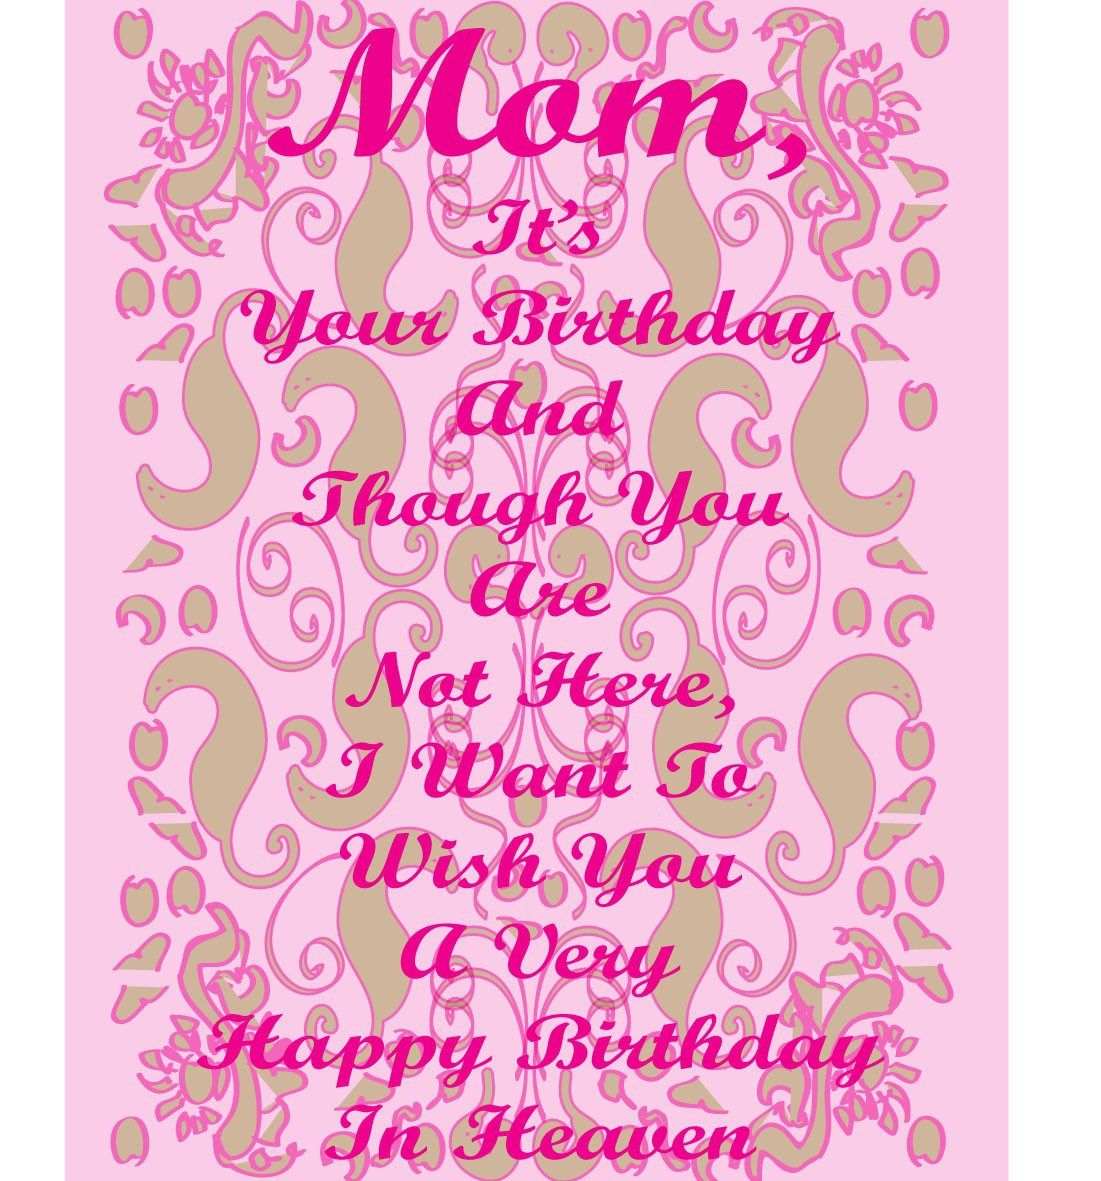 Birthday Tribute To Deceased Mother Happy Birthday Quotes To Deceased Mother